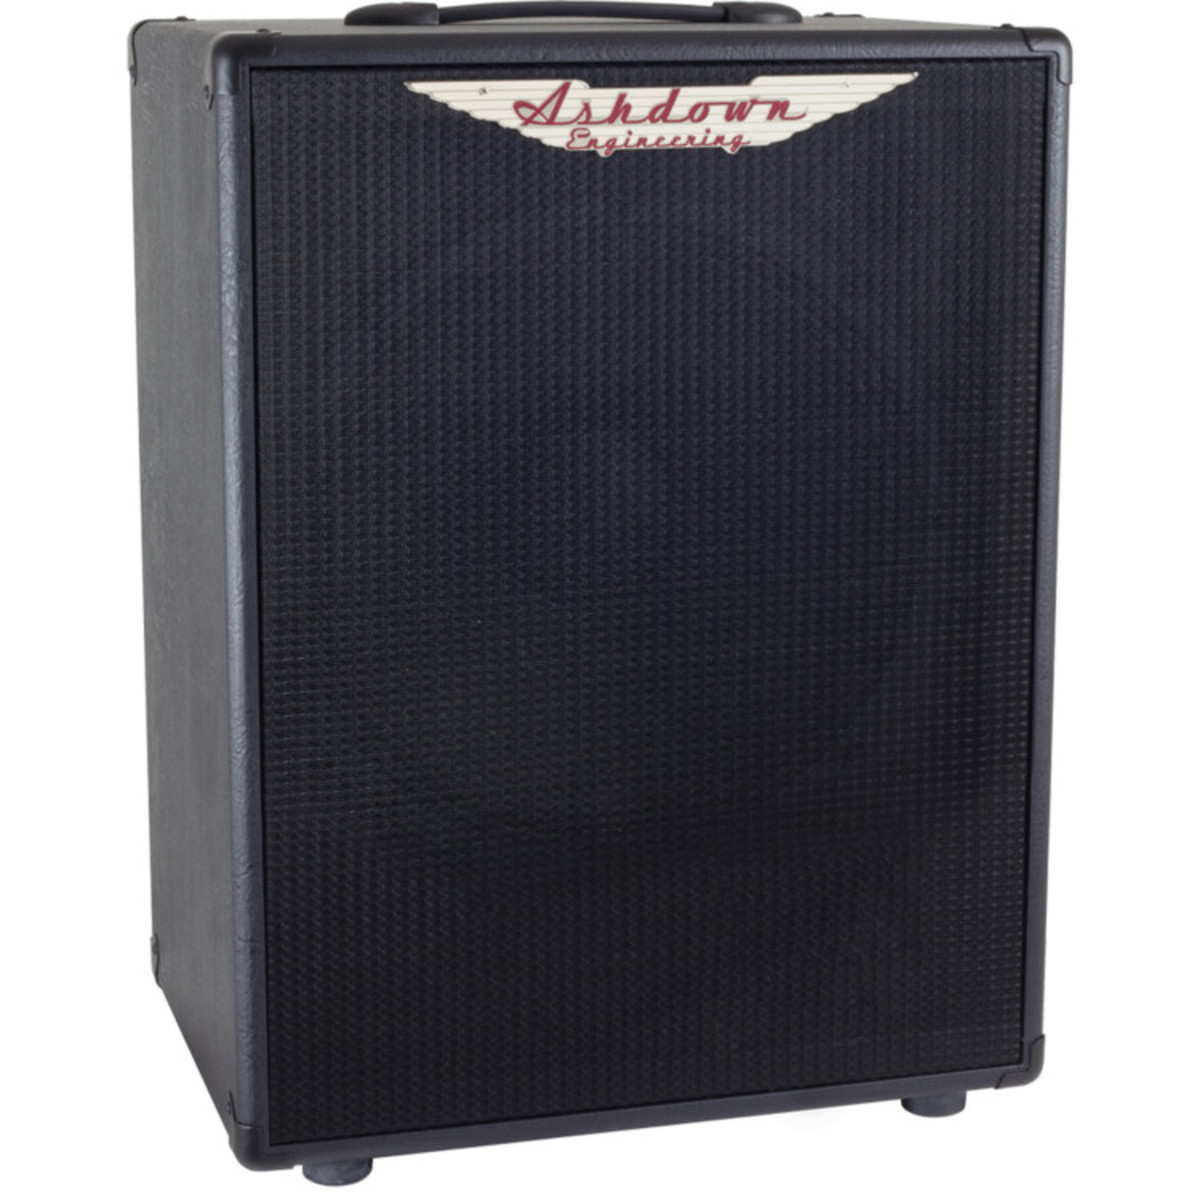 1x15 Guitar Cabinet Ashdown Rm Mag 115 250w 1x15 Rootmaster Mag Bass Amp Cab Nearly